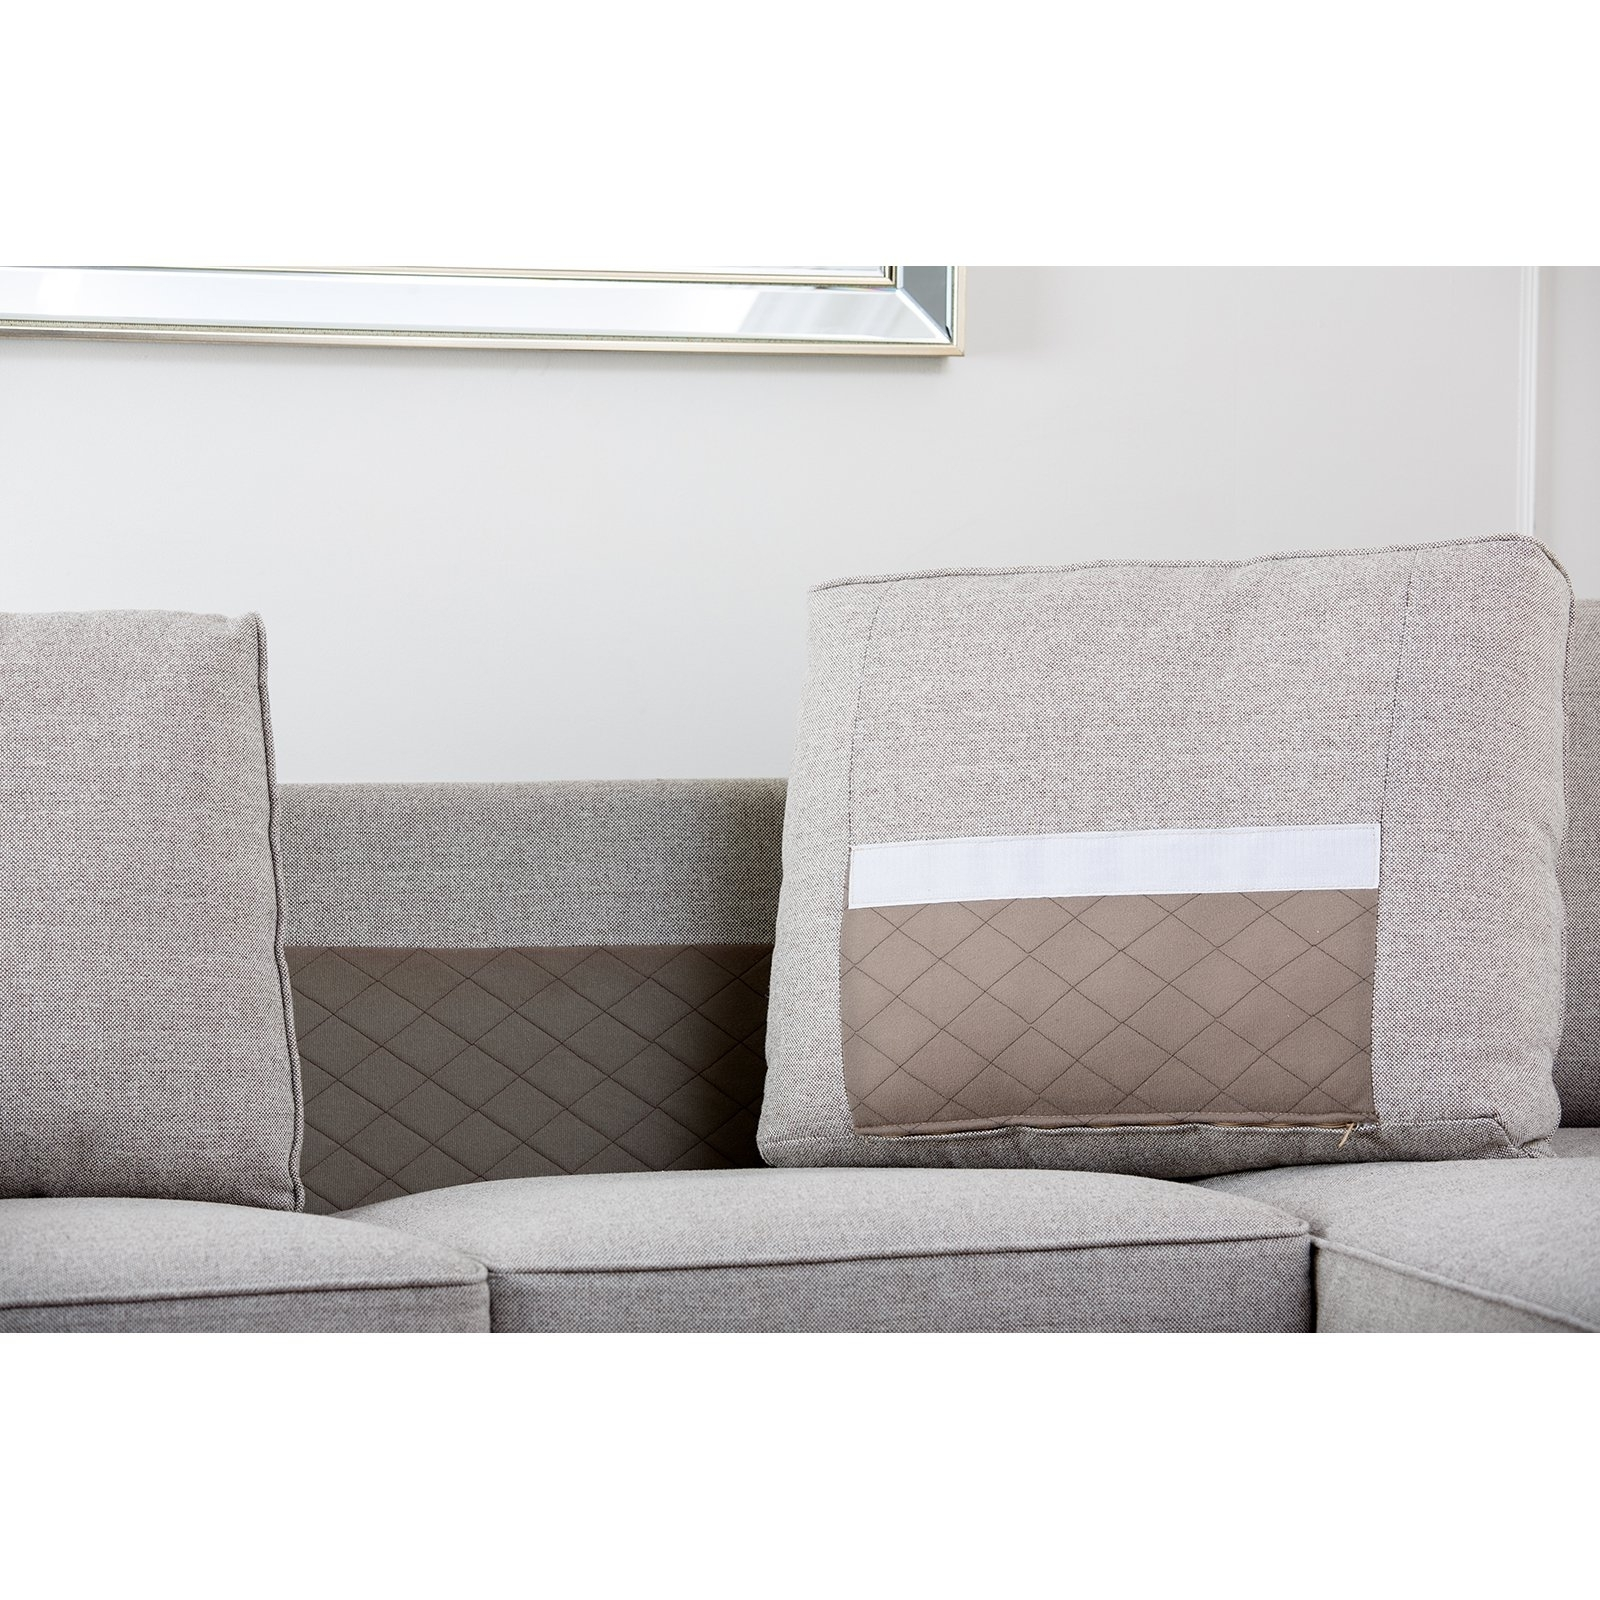 Abbyson Regina Sectional Sofa – Gray | Hayneedle Pertaining To Regina Sectional Sofas (View 10 of 10)